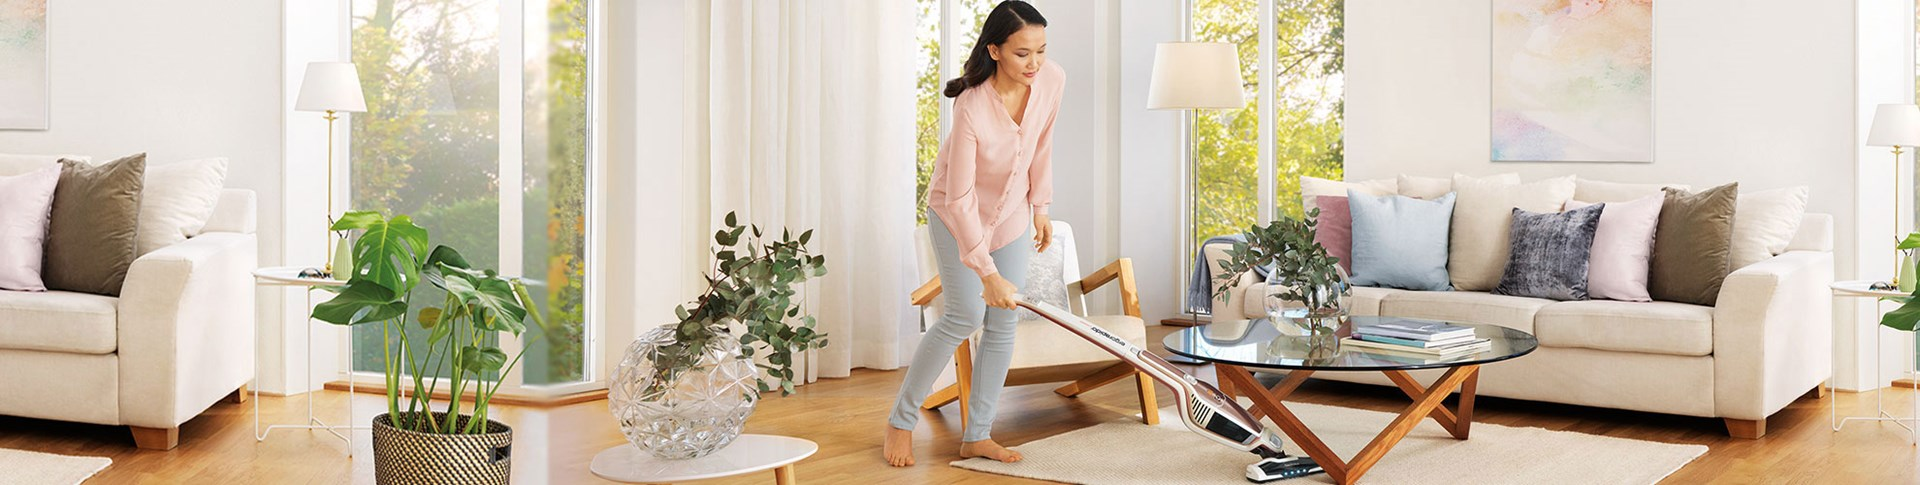 Discover Electrolux Vacuum Cleaners for Your Home